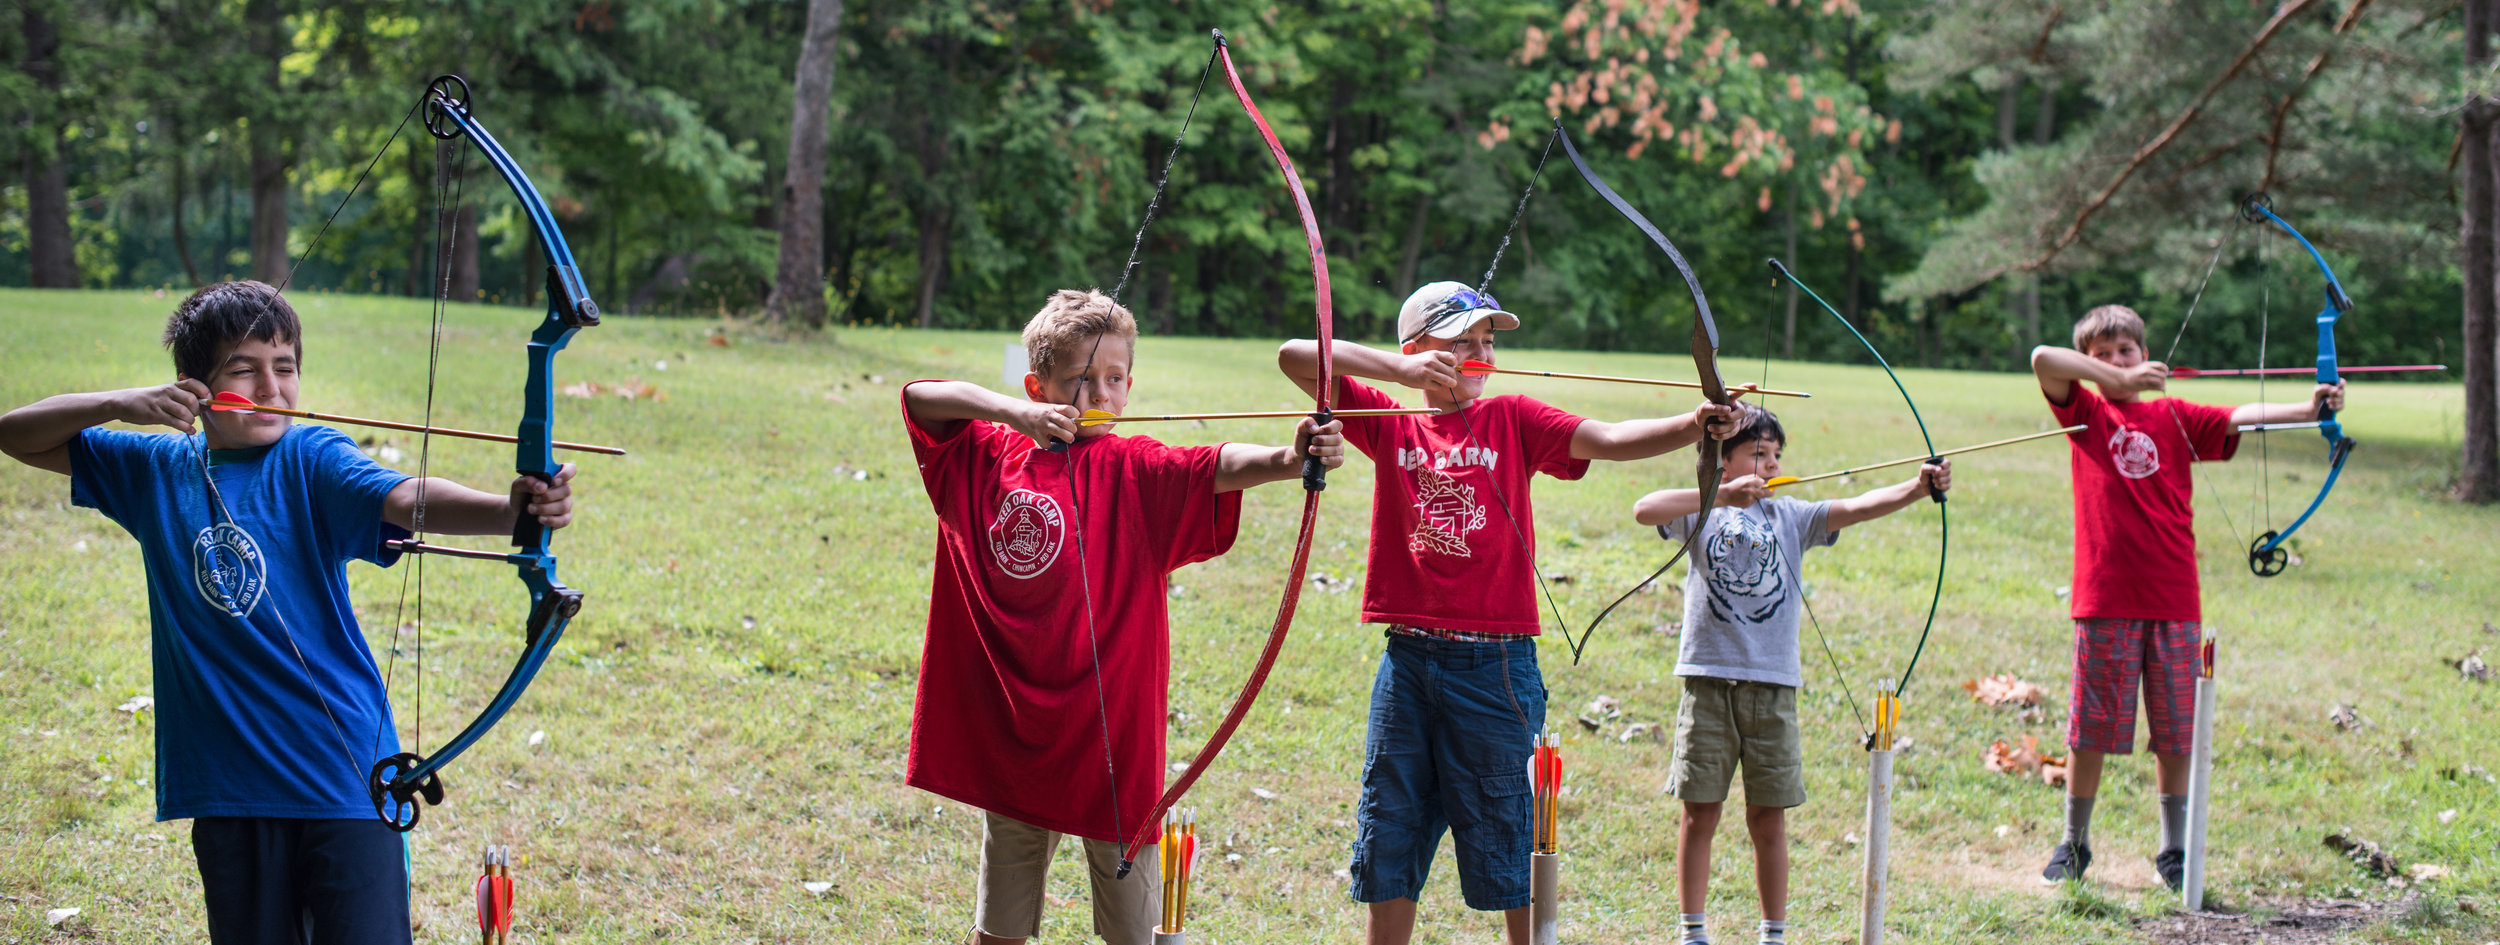 Red Oak Boys Camp Archery